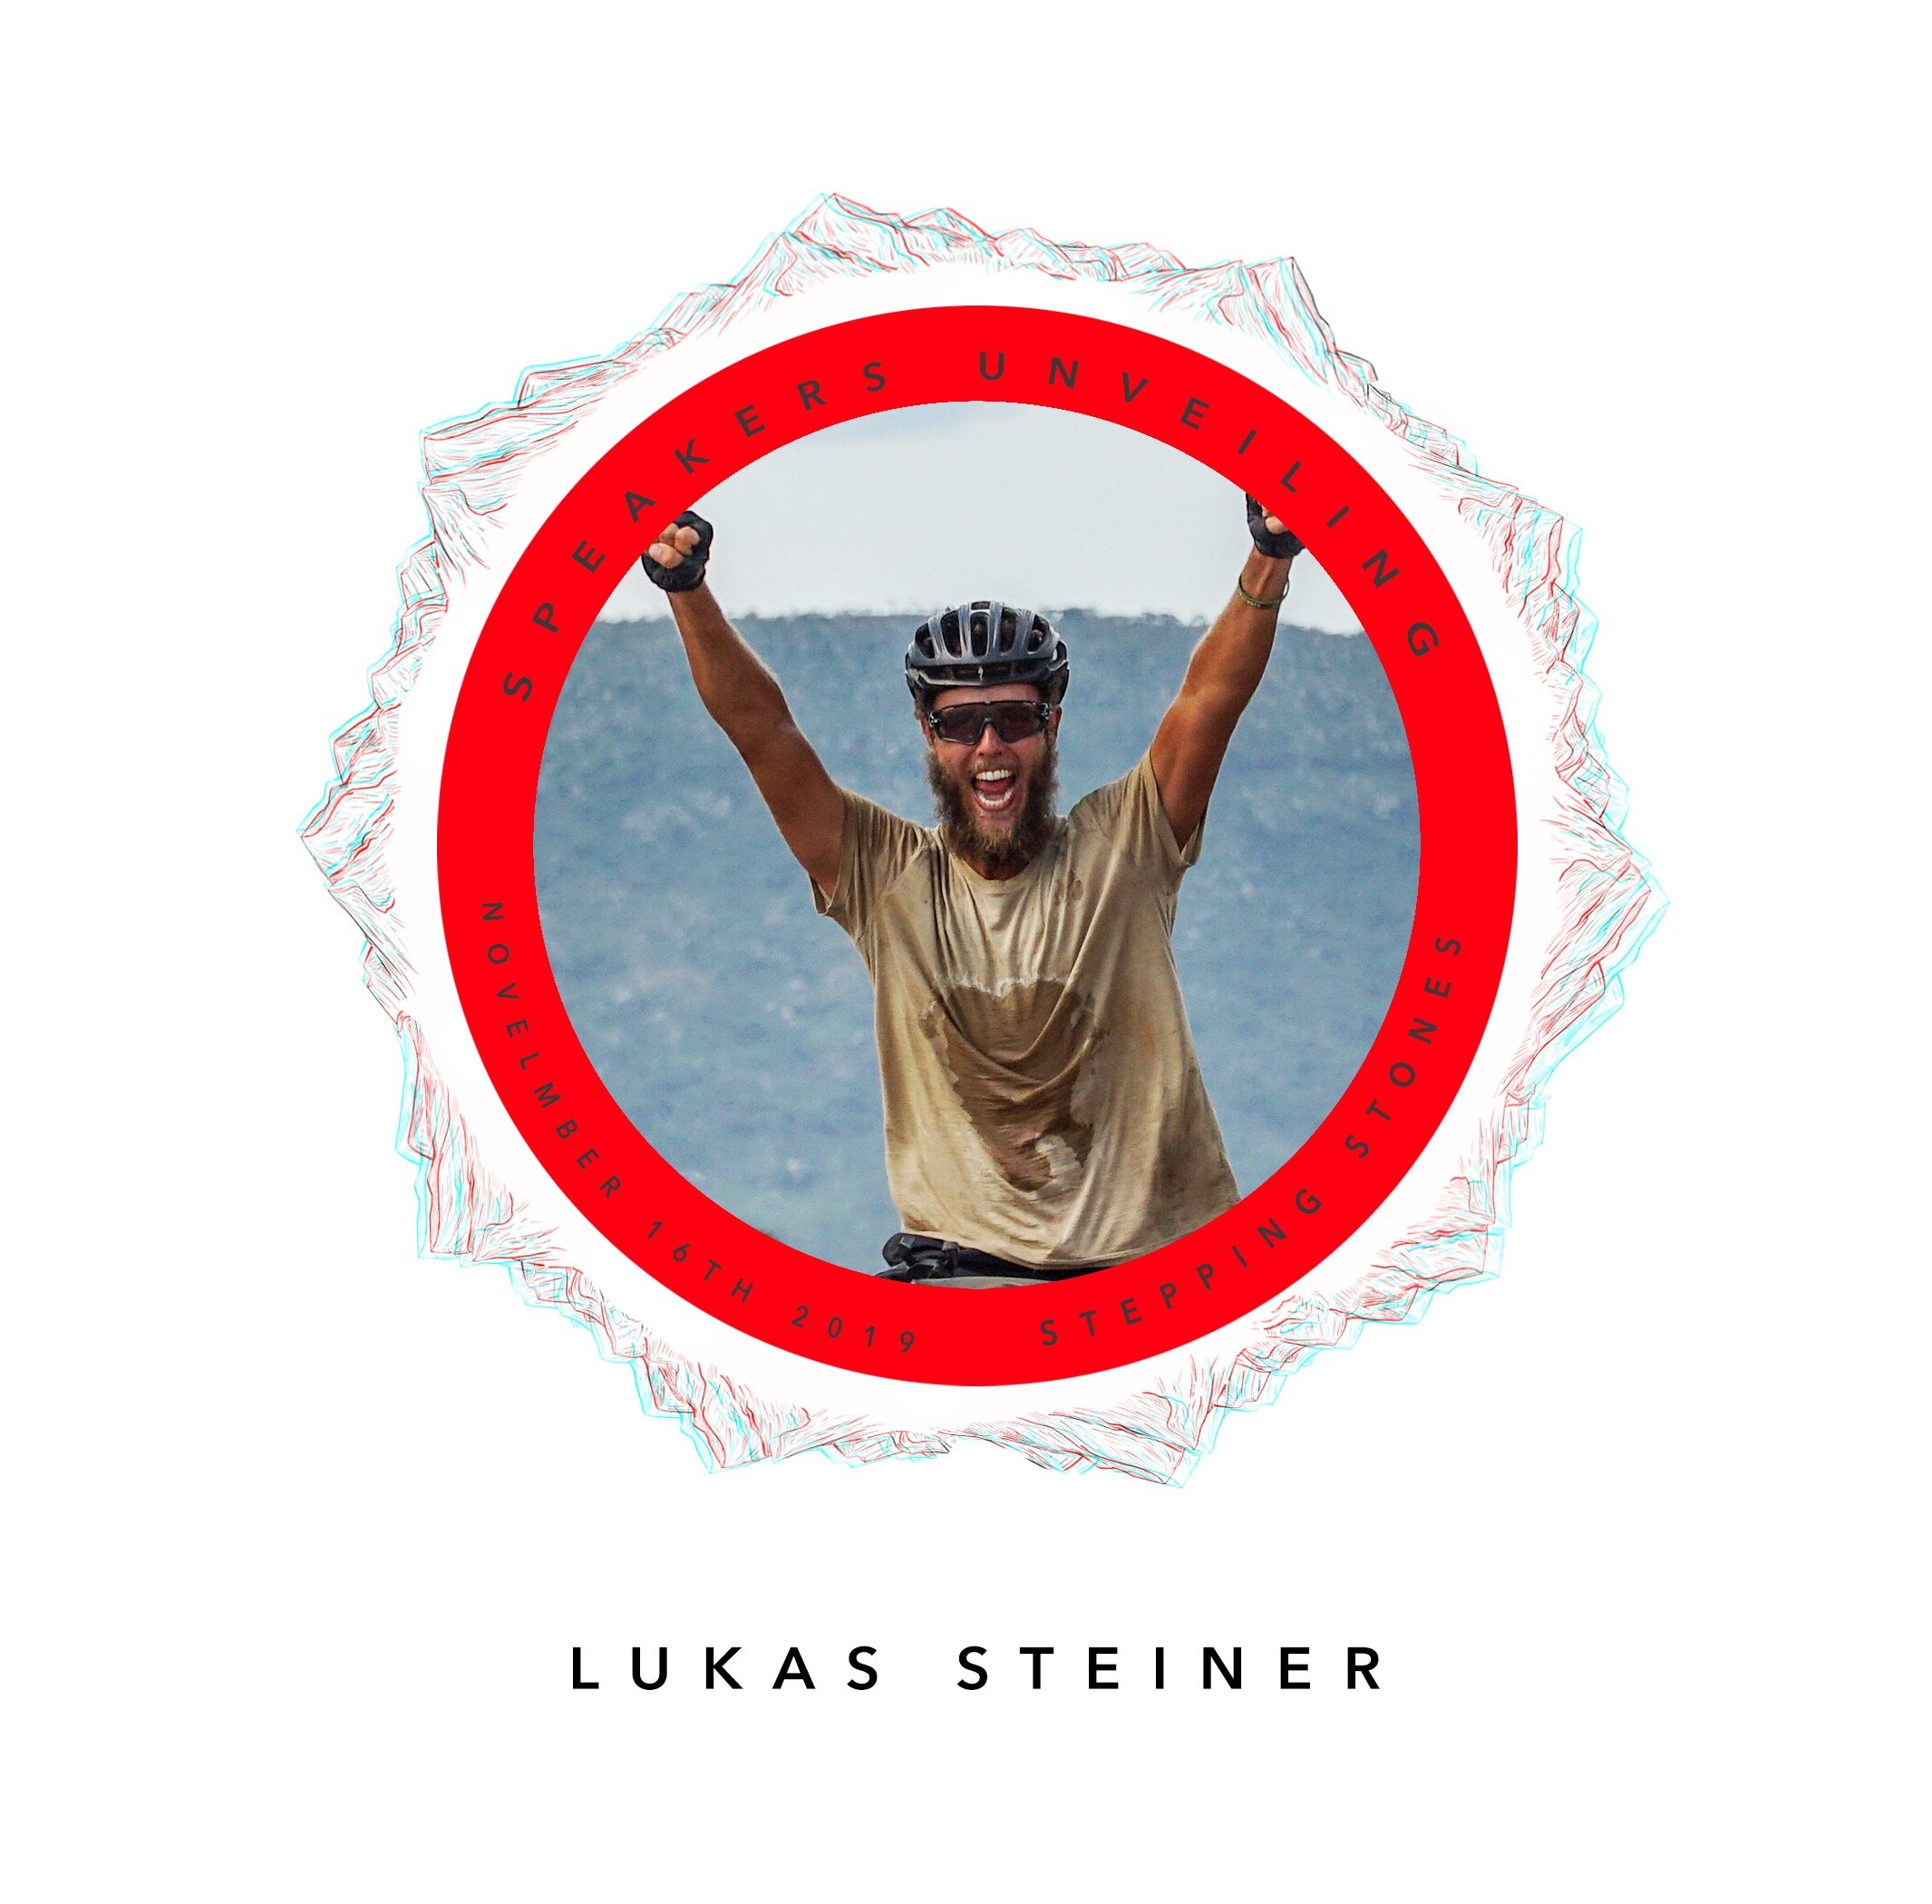 We are very happy to unveil our final speaker, who has won by more than half of the votes: Lukas Steiner!It is through his unique and inspiring adventure, on a bike from Zürich to Cape Town, that he was able to change his perspectives, overcome tough challenges and discover the many treasures the world had to offer. - We would like to thank the 1000+ people who took the time to vote, but also our 3 finalists for sharing their amazing stories with us.